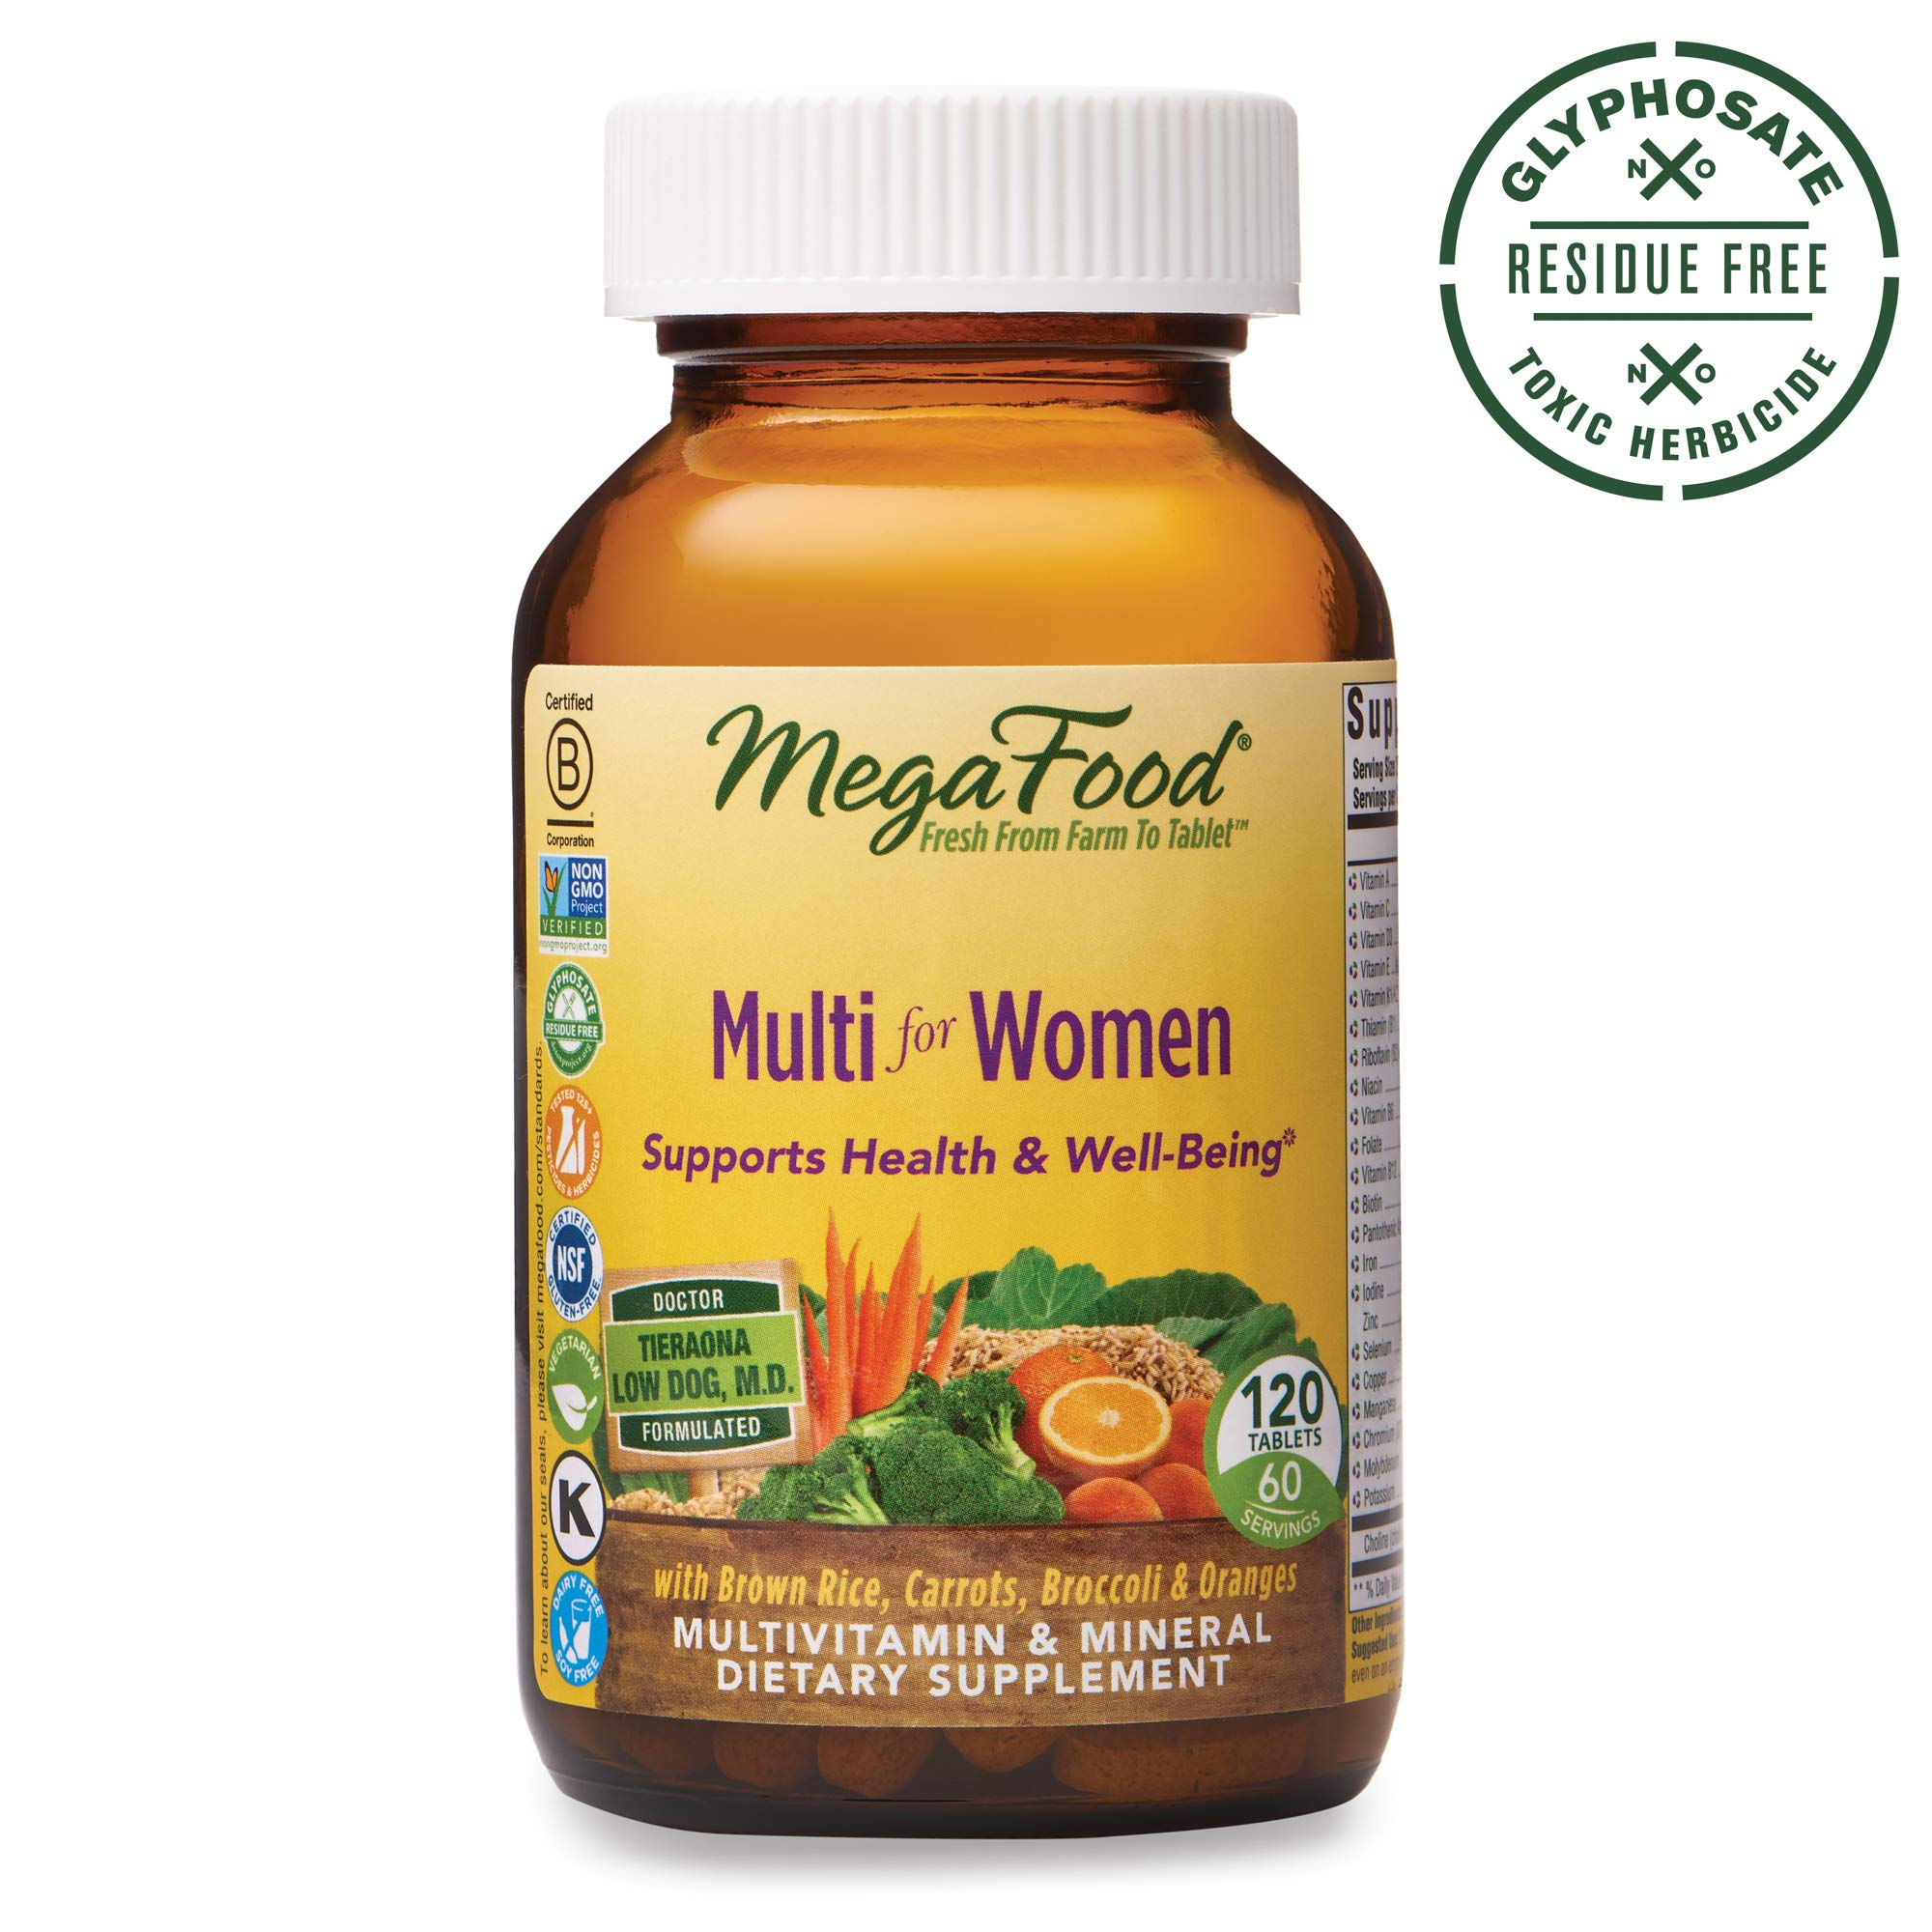 MegaFood, Multi for Women, Supports Optimal Health and Wellbeing, Multivitamin and Mineral Dietary Supplement, Gluten Free, Vegetarian, 120 tablets (60 servings) by MegaFood